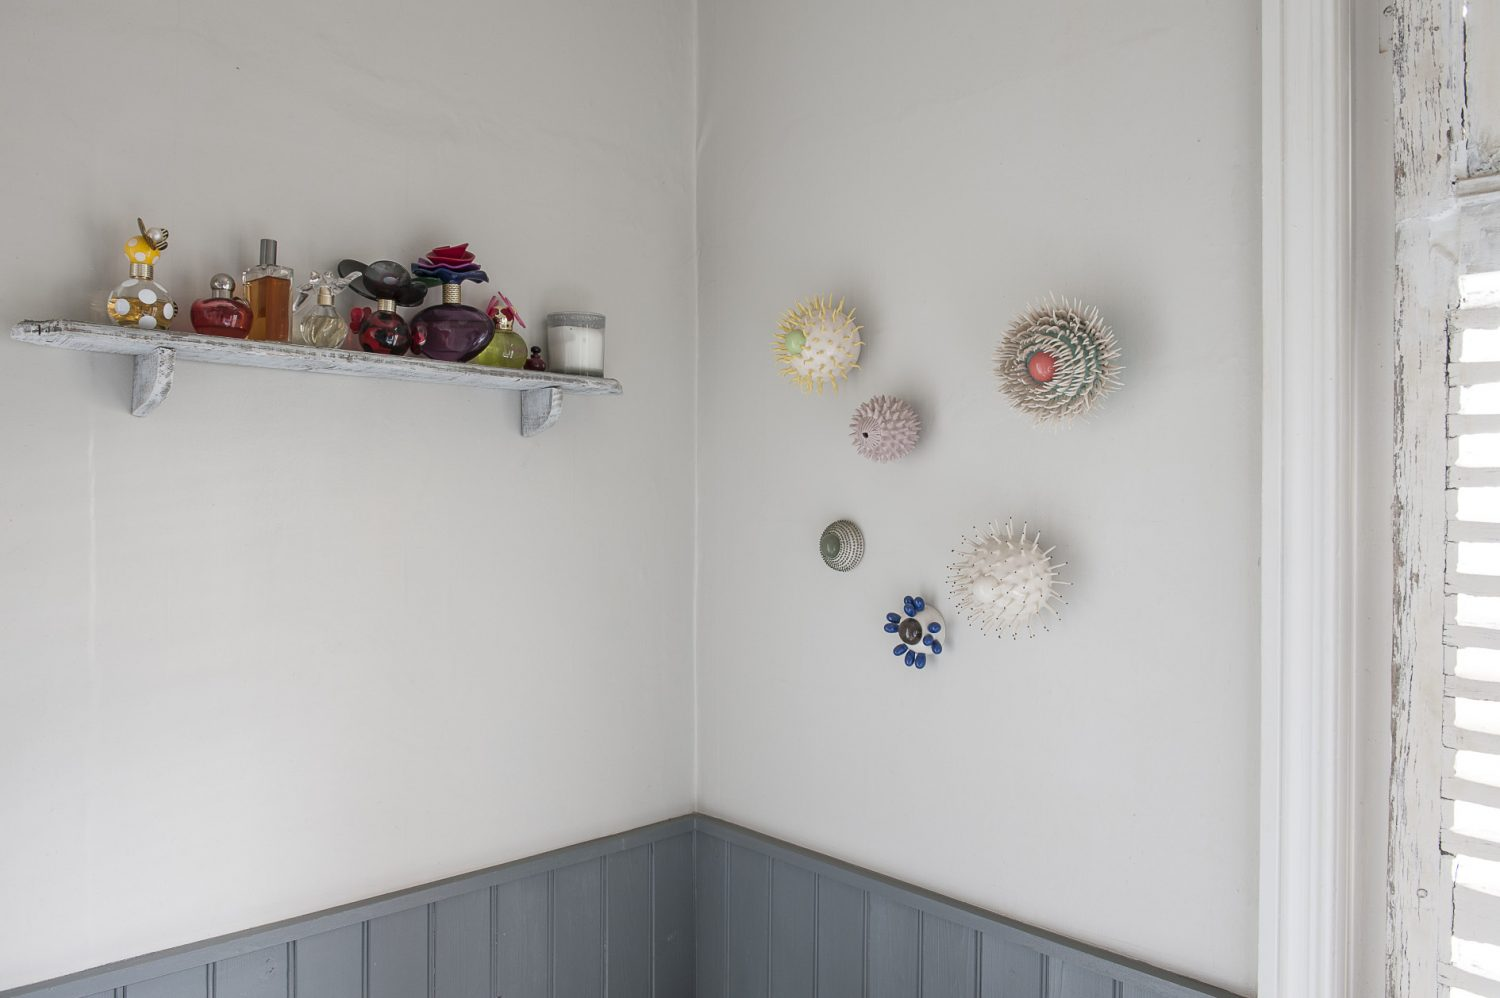 A grouping of spiky ceramic sculptures, reminiscent of sea anemones, from Myung Nam An are mounted on one wall